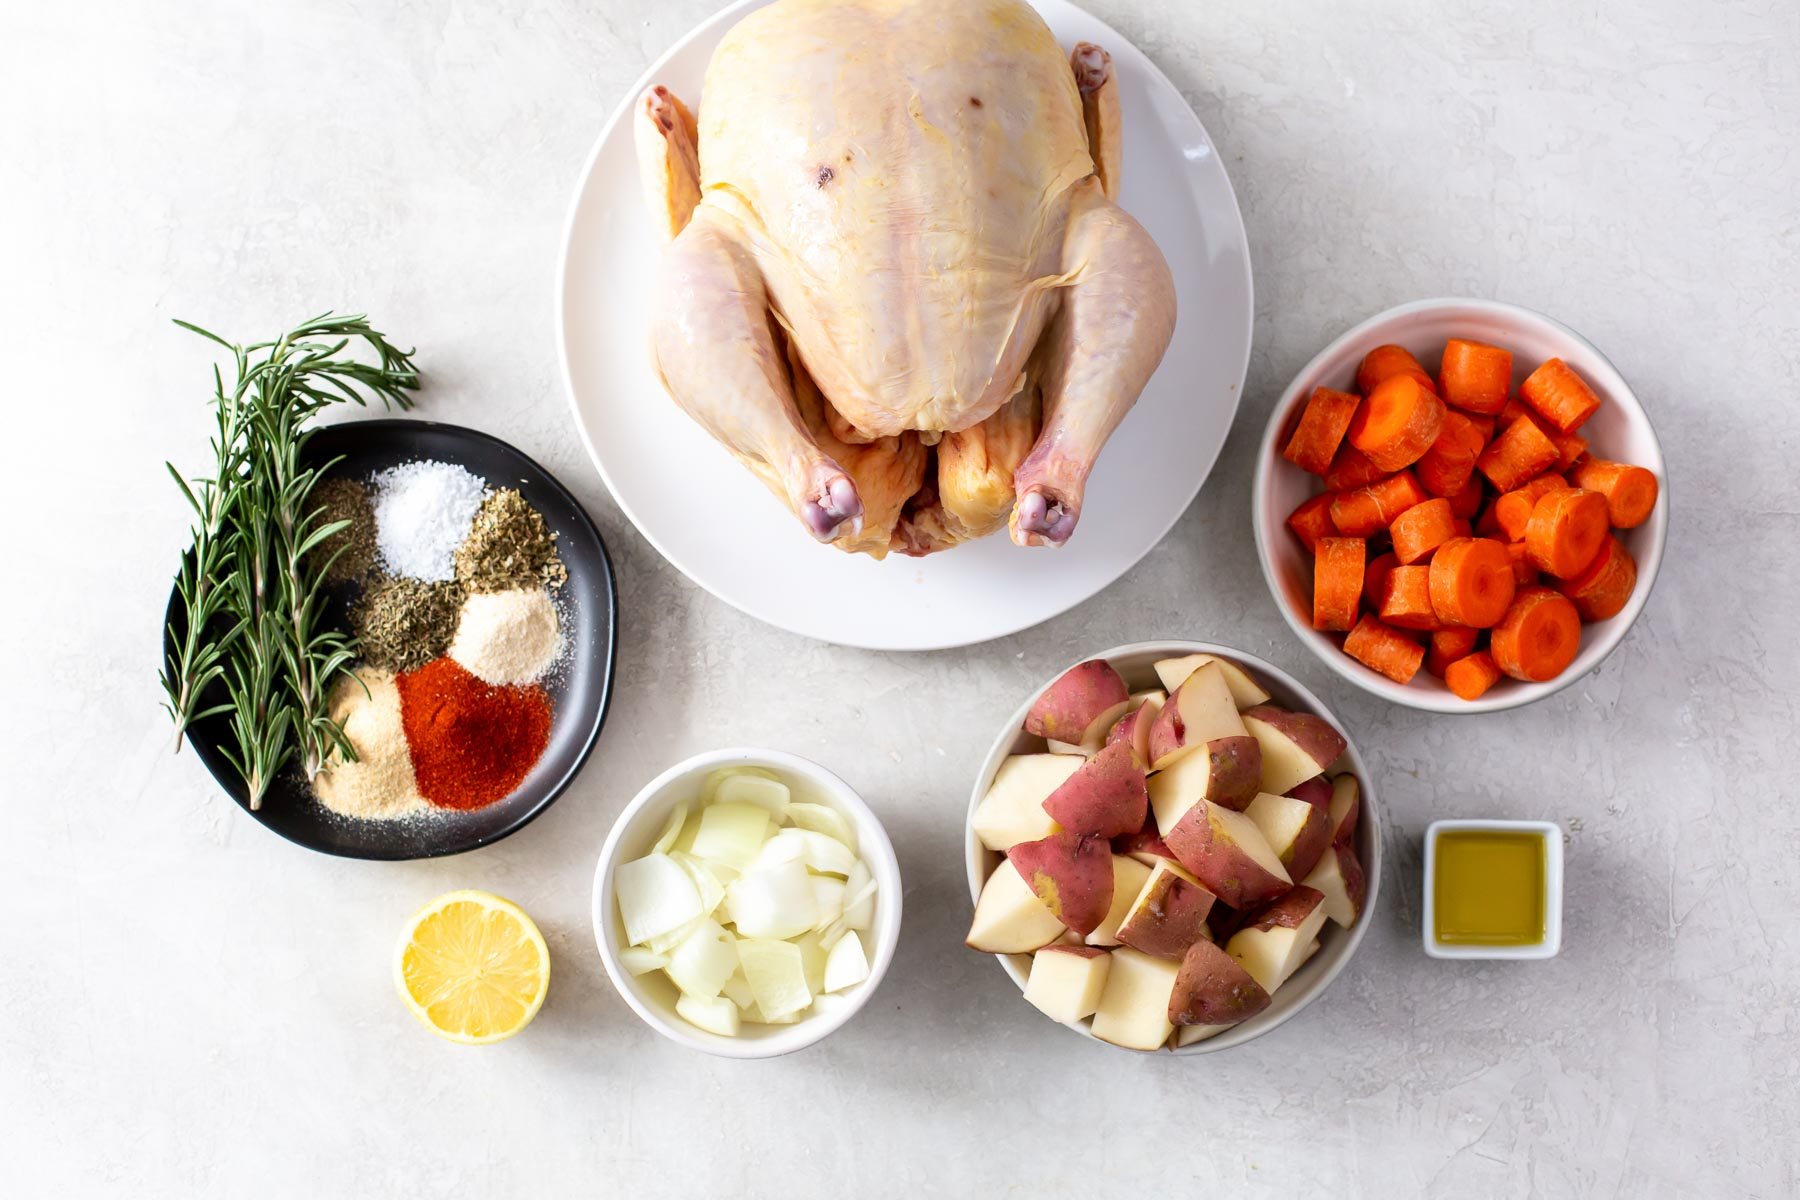 ingredients for slow cooker whole chicken recipe